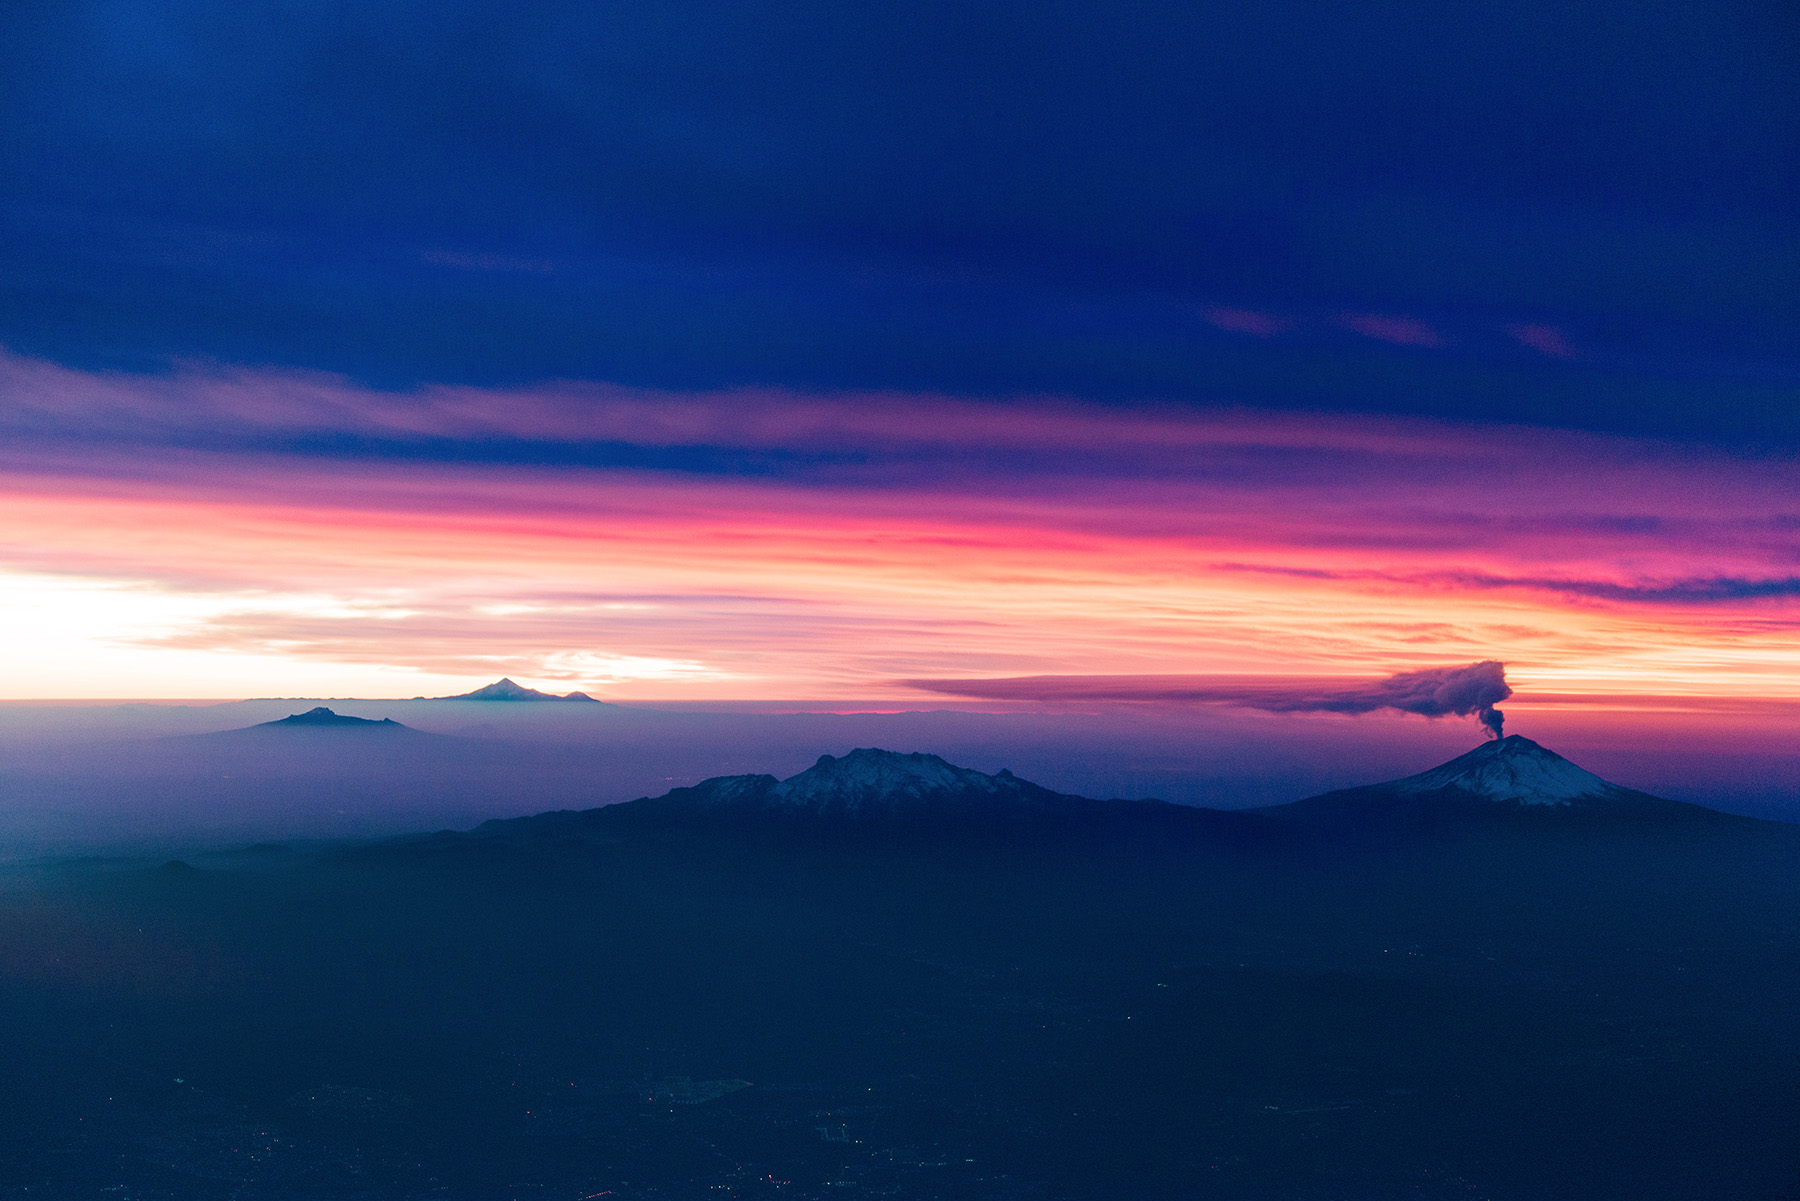 Volcano at Dawn - My flight left Acapulco before dawn on the way to Mexico City. Just the night before, I had been told there was a volcano on the way, and now I was flying over at sunrise and seeing it first hand - with smoke coming out of it! Such a cool experience!